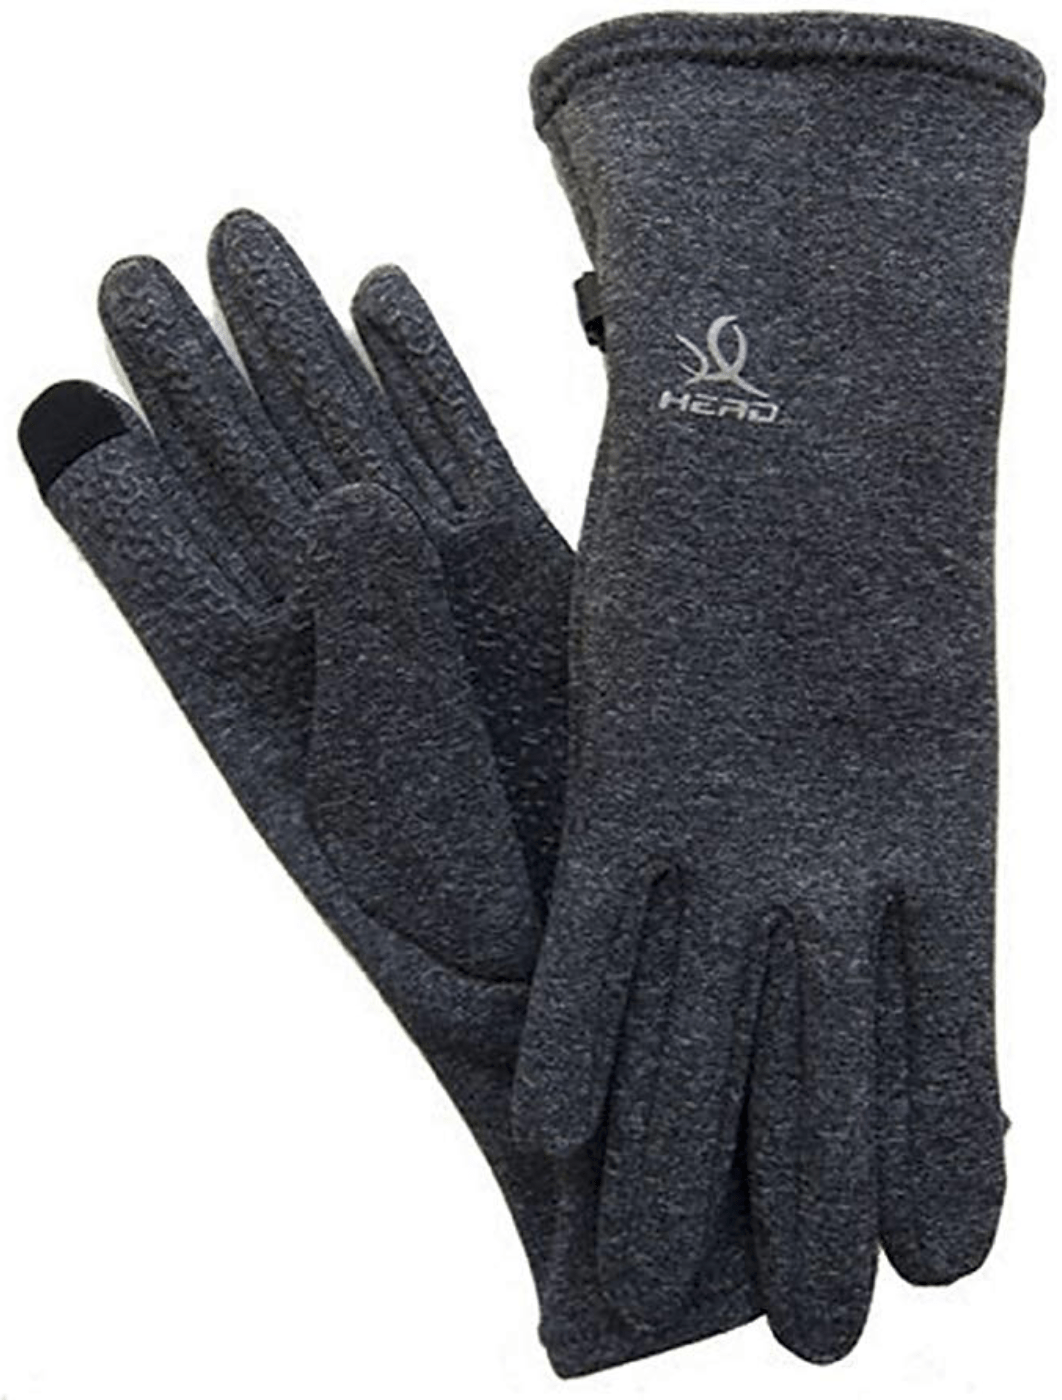 Head Running Gloves